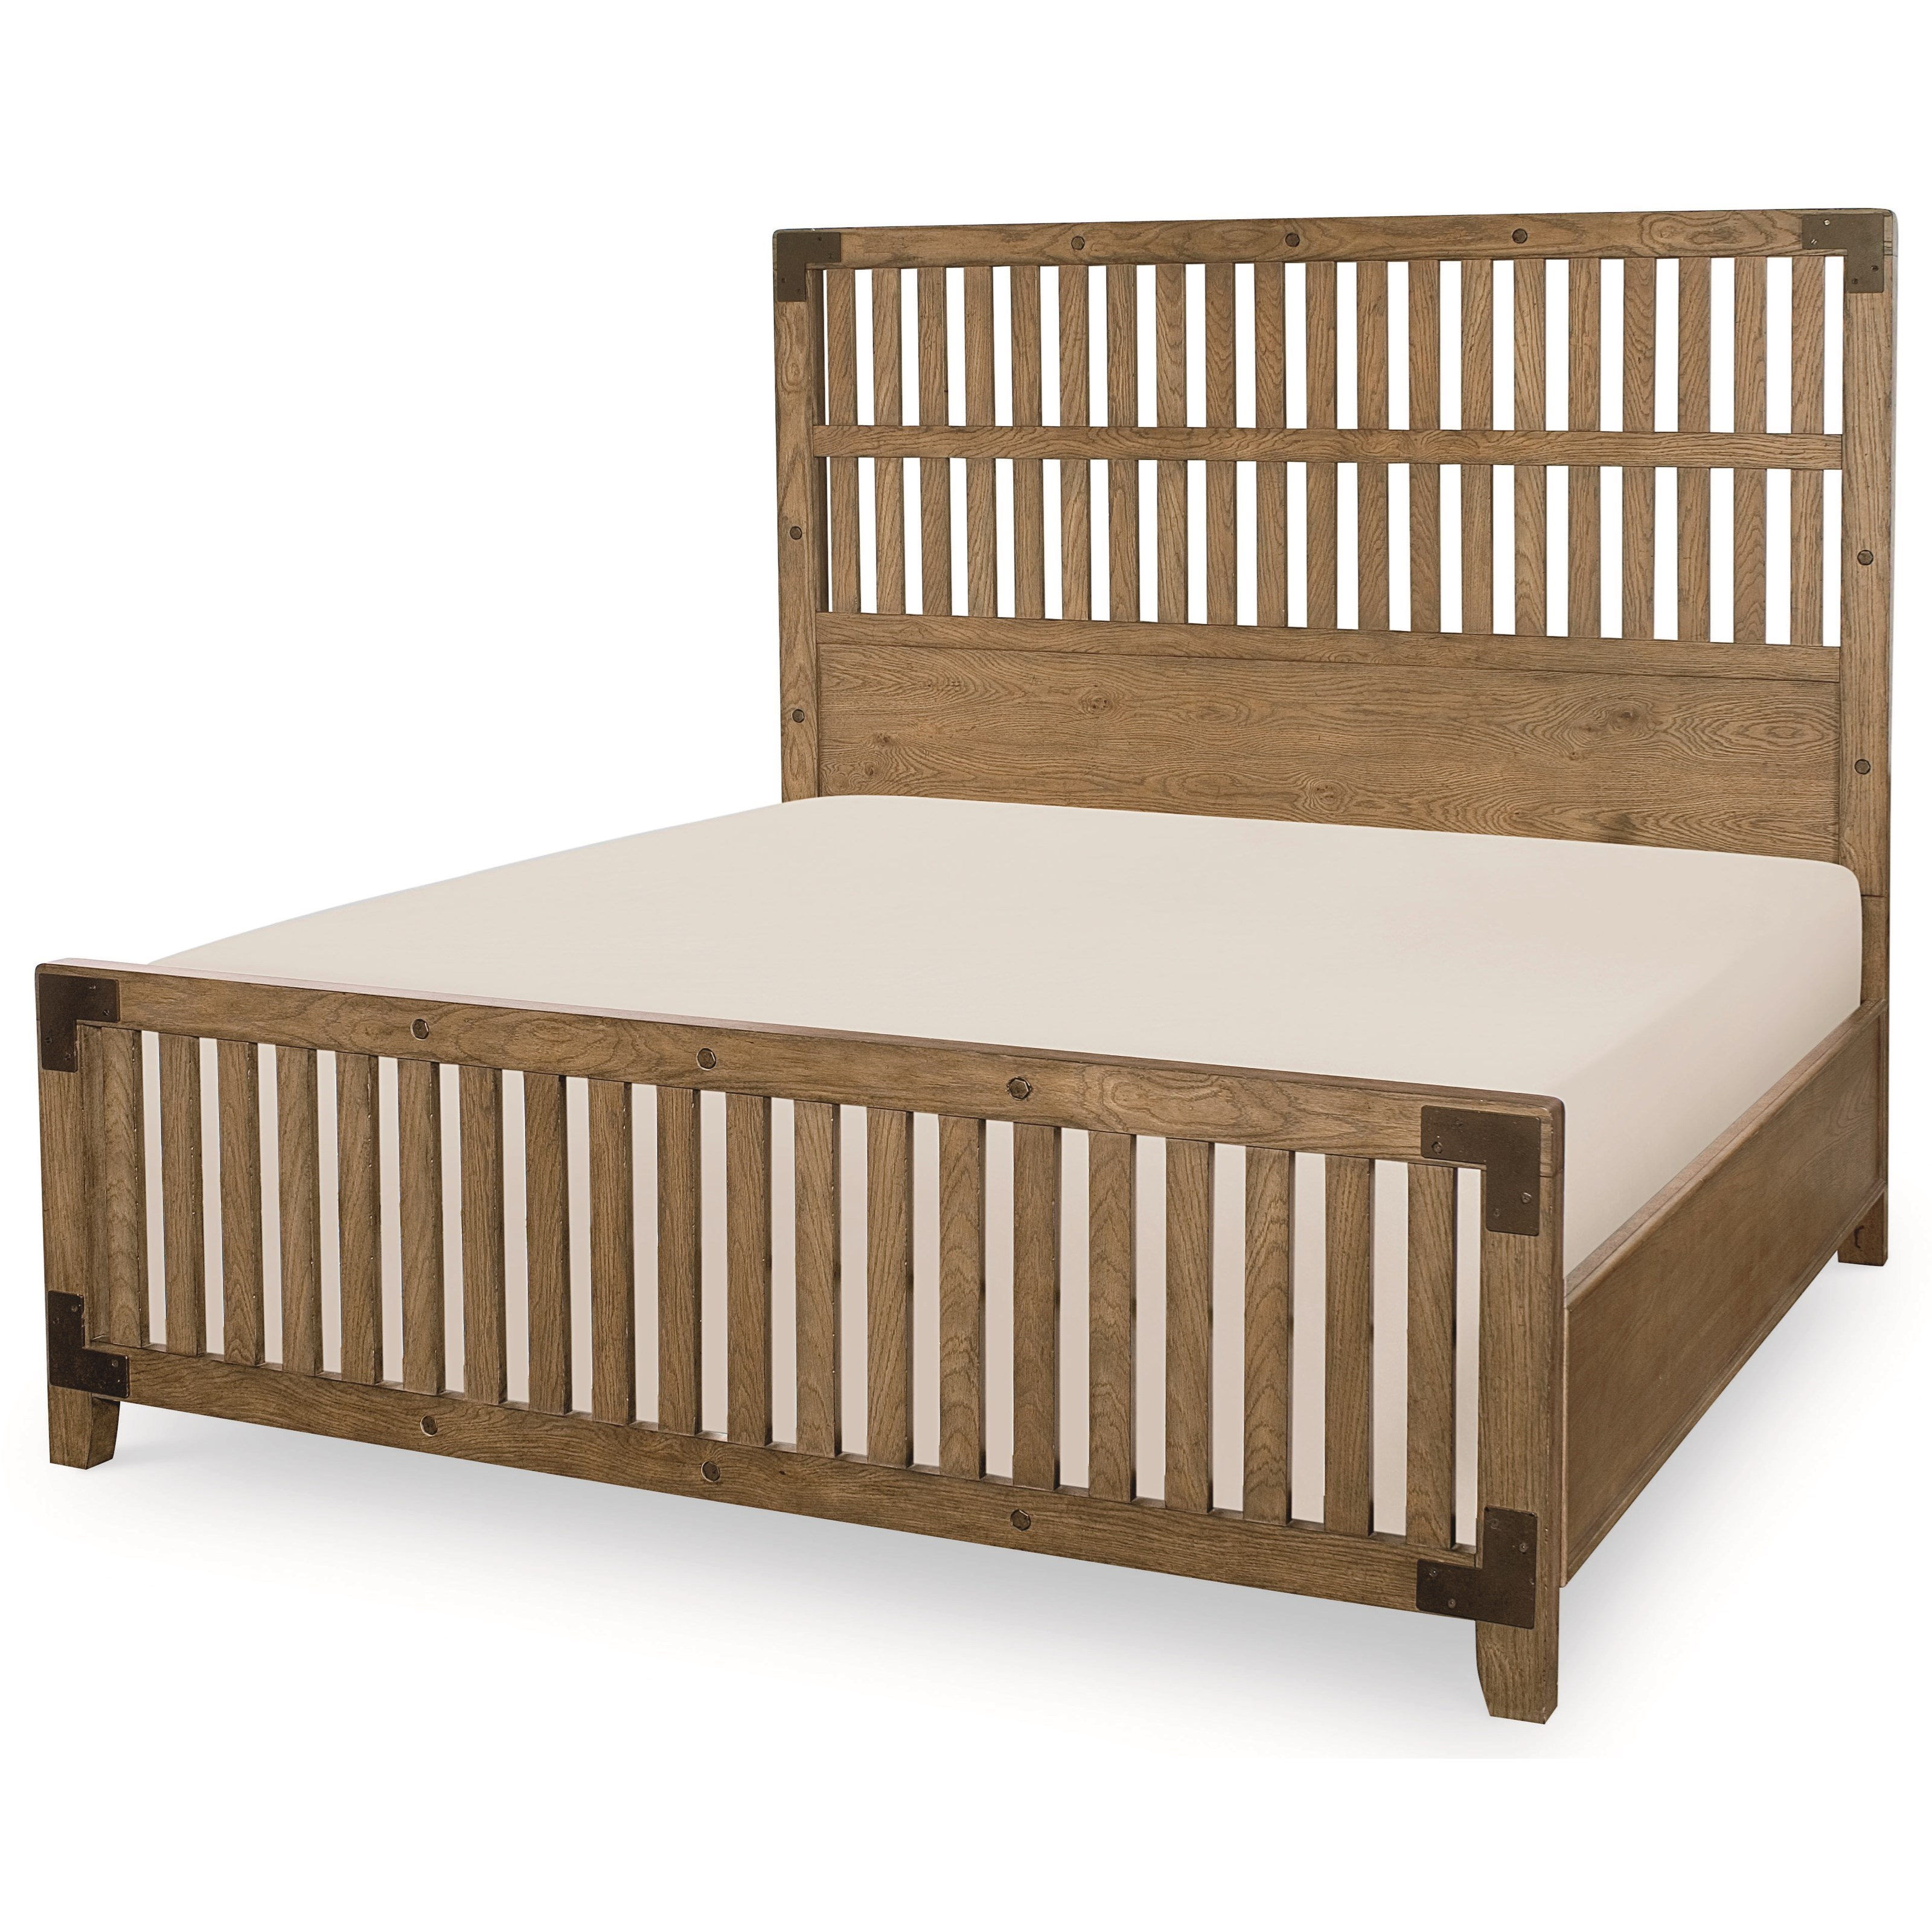 Legacy classic metalworks king complete wood gate bed for Legacy classic bed